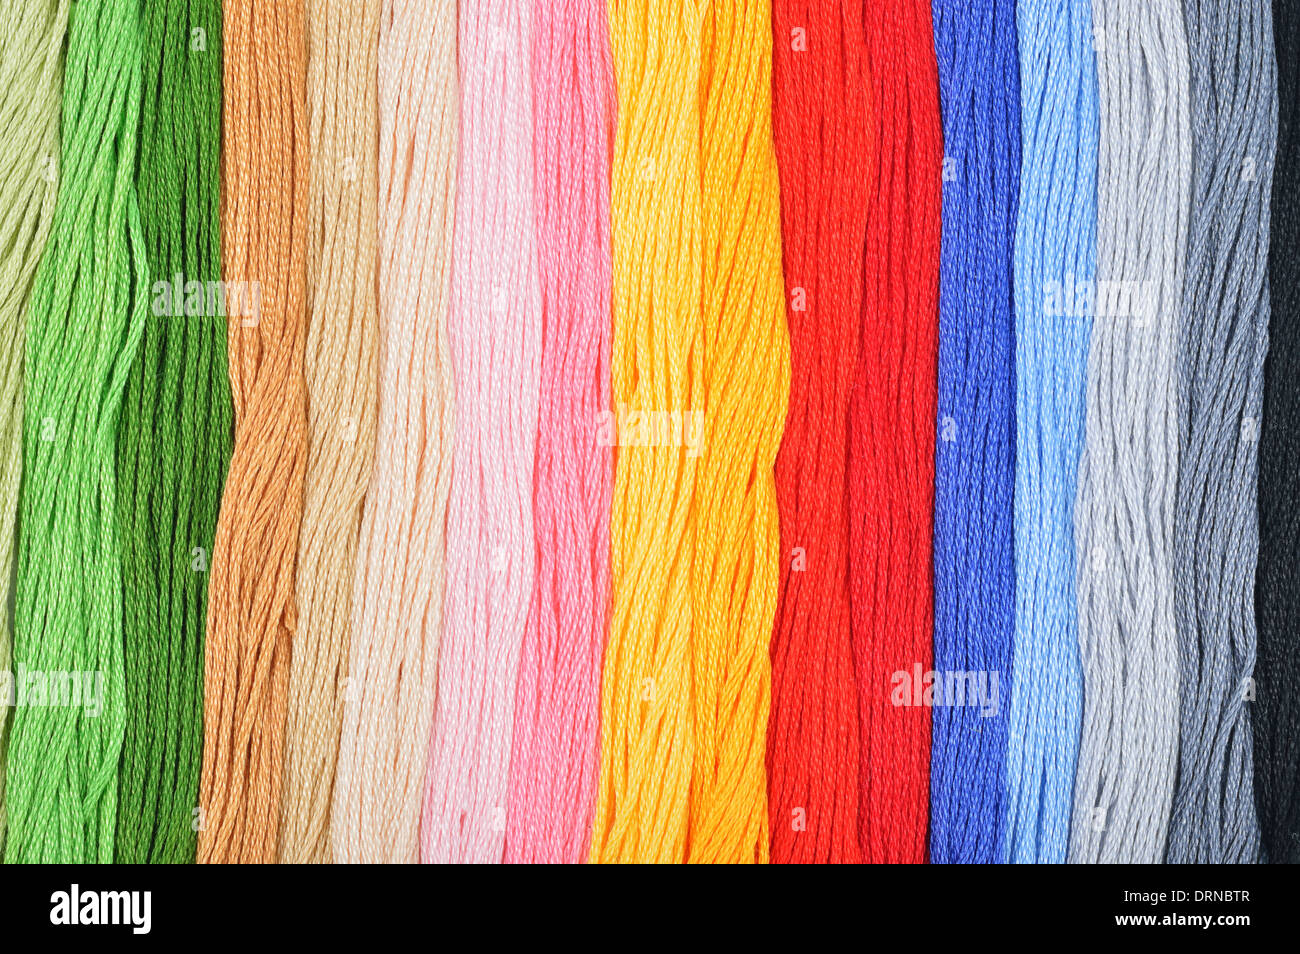 Colorful embroidery threads in a row. Colorful background. - Stock Image